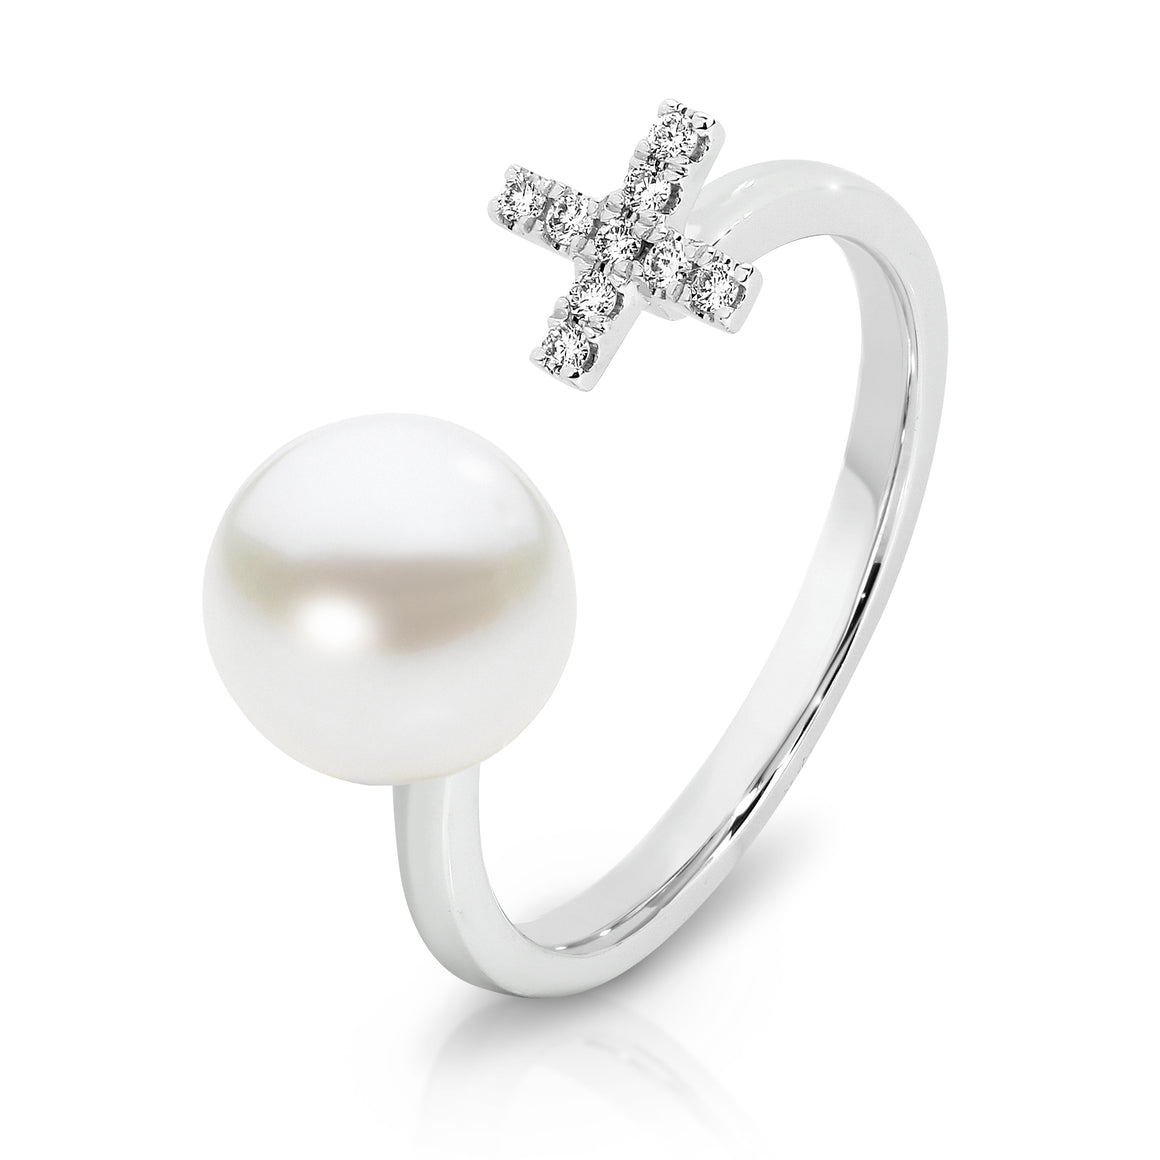 18ct Gold Diamond & Pearl 'Luella' Ring - Gemma Stone  ABN:51 621 127 866